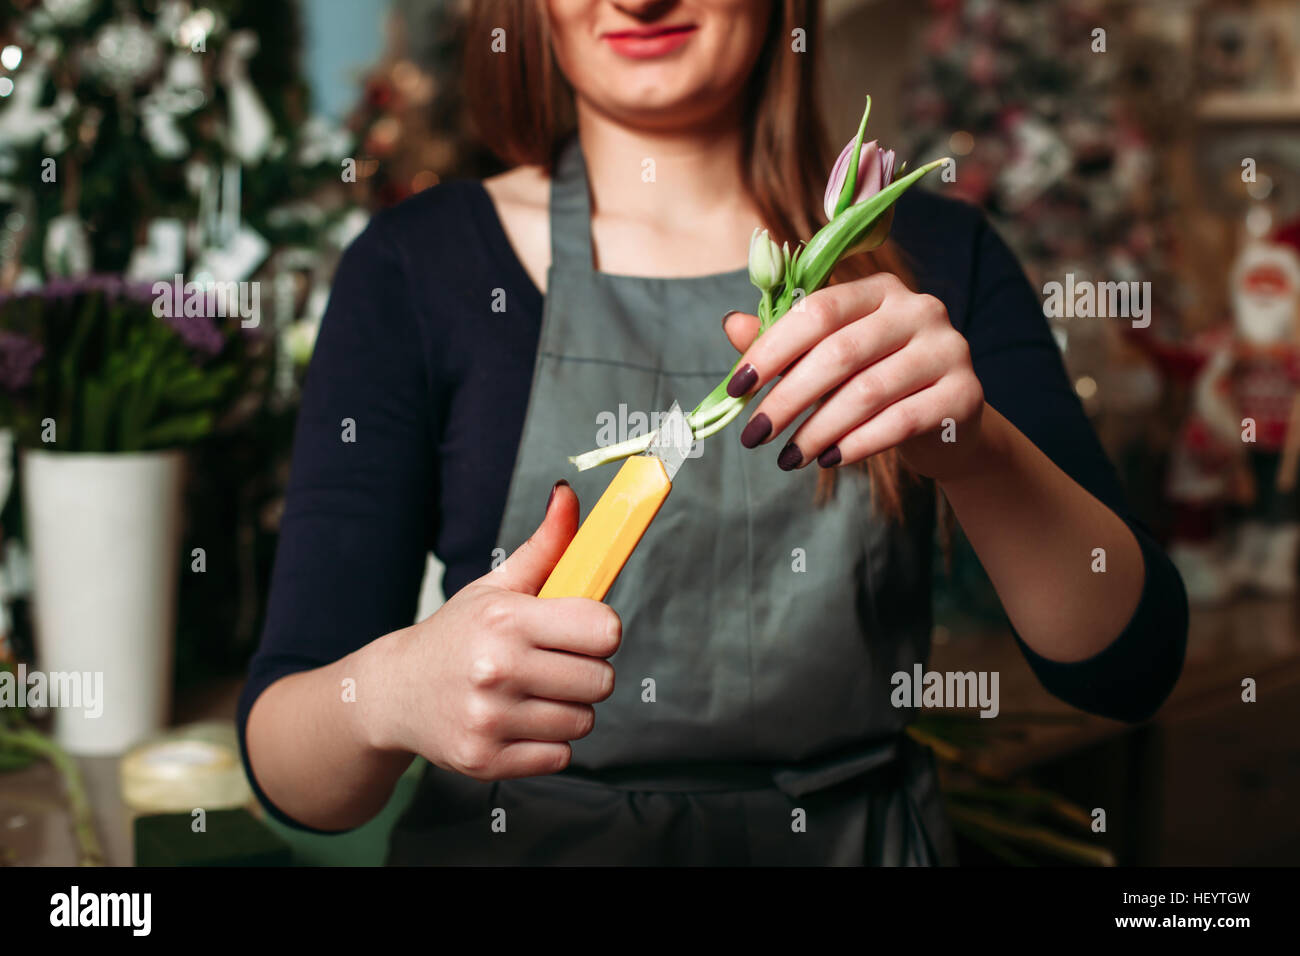 Female florist working with flowers - Stock Image